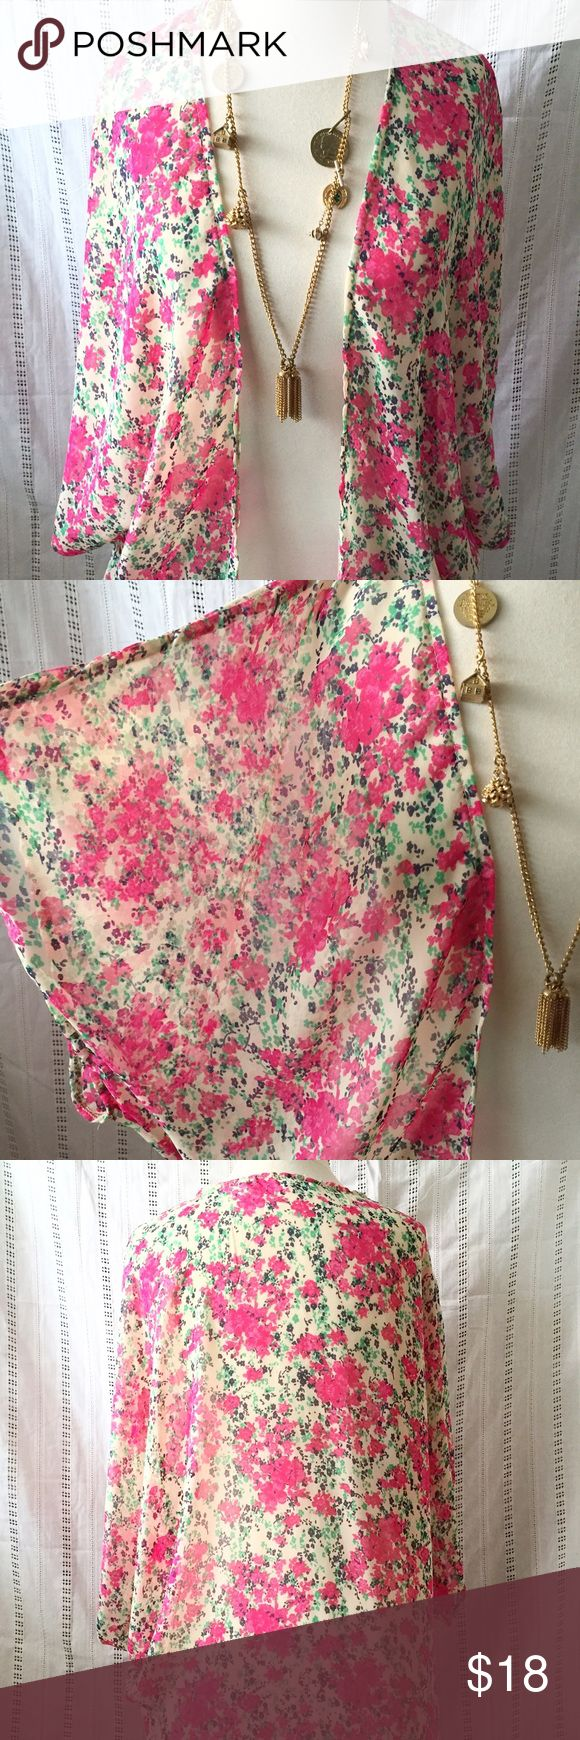 """Charlotte Ruse Ivory Floral Kimono Small Charlotte Ruse Ivory with floral print sheer kimono, in excellent condition. Small. Measurements:  Shoulder to shoulder: 18"""" Sleeve length: 8"""" Length: 28"""" Charlotte Russe Other"""